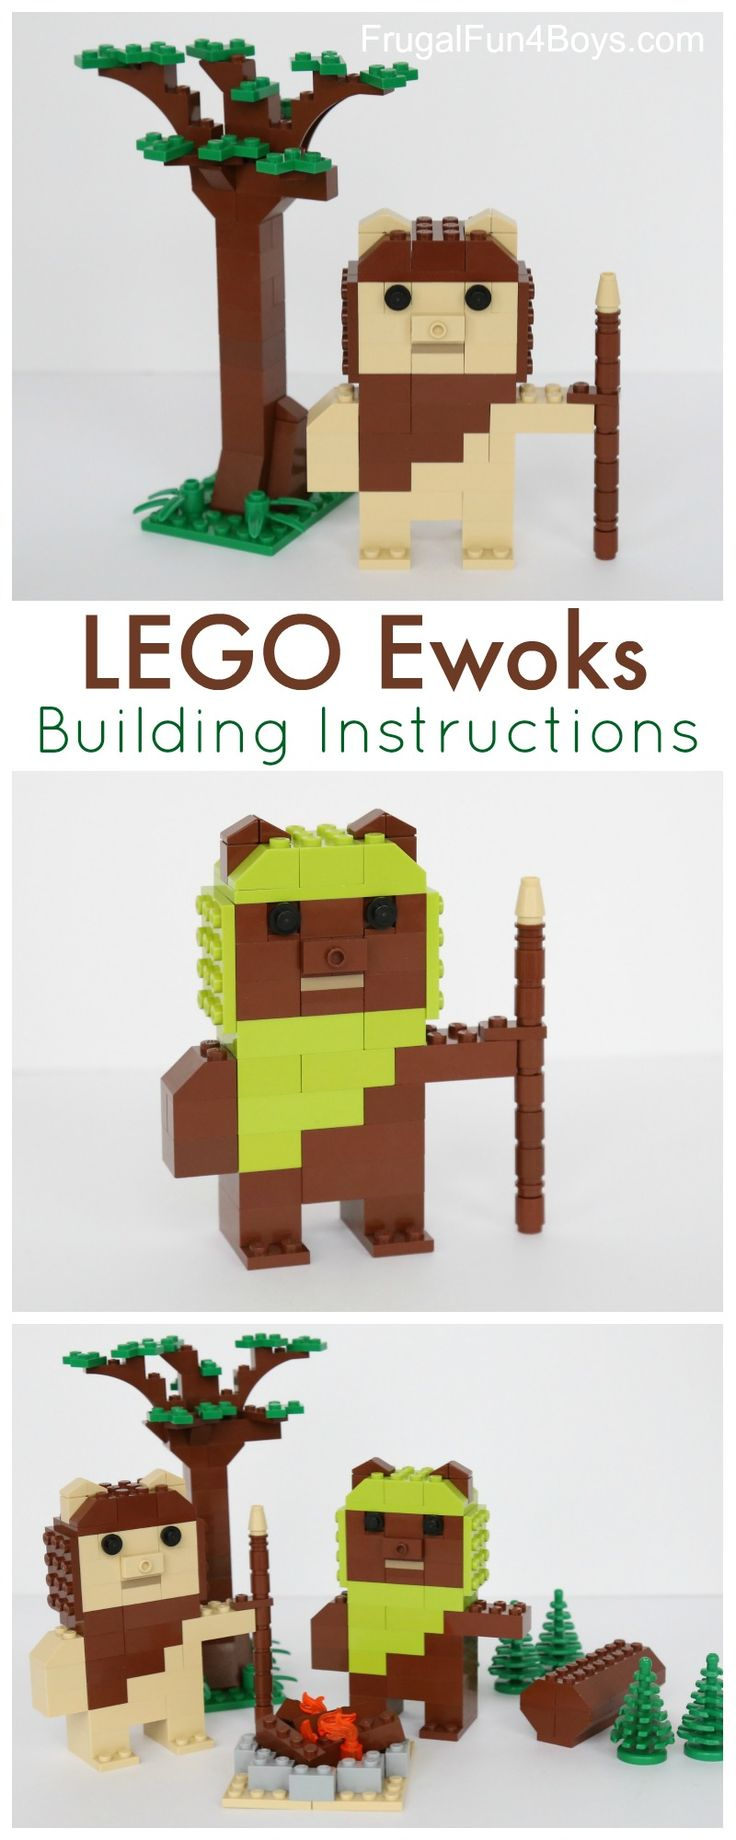 LEGO Star Wars - Ewoks Building Instructions